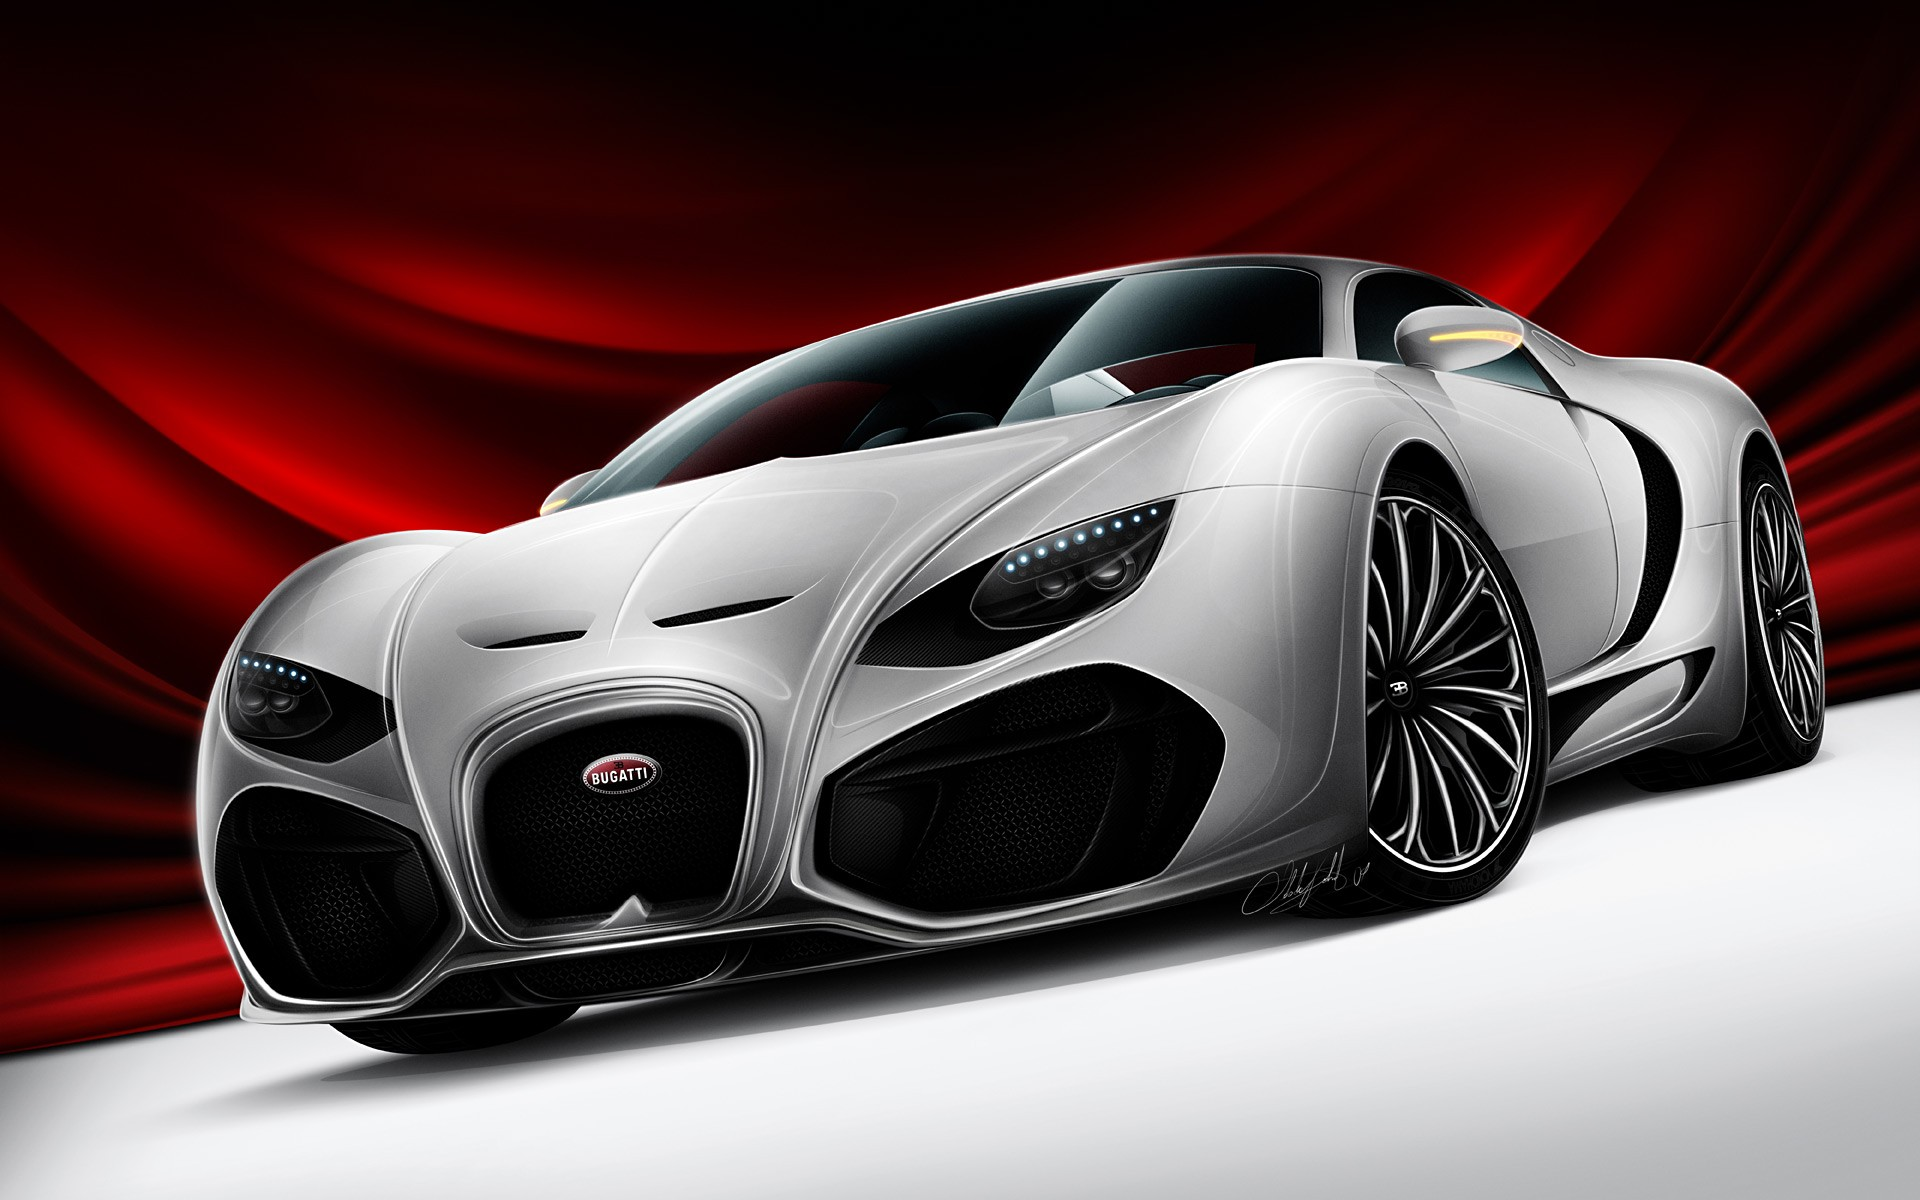 Exotic Cars Hd Wallpapers: Index Of /wp-content/uploads/2014/04